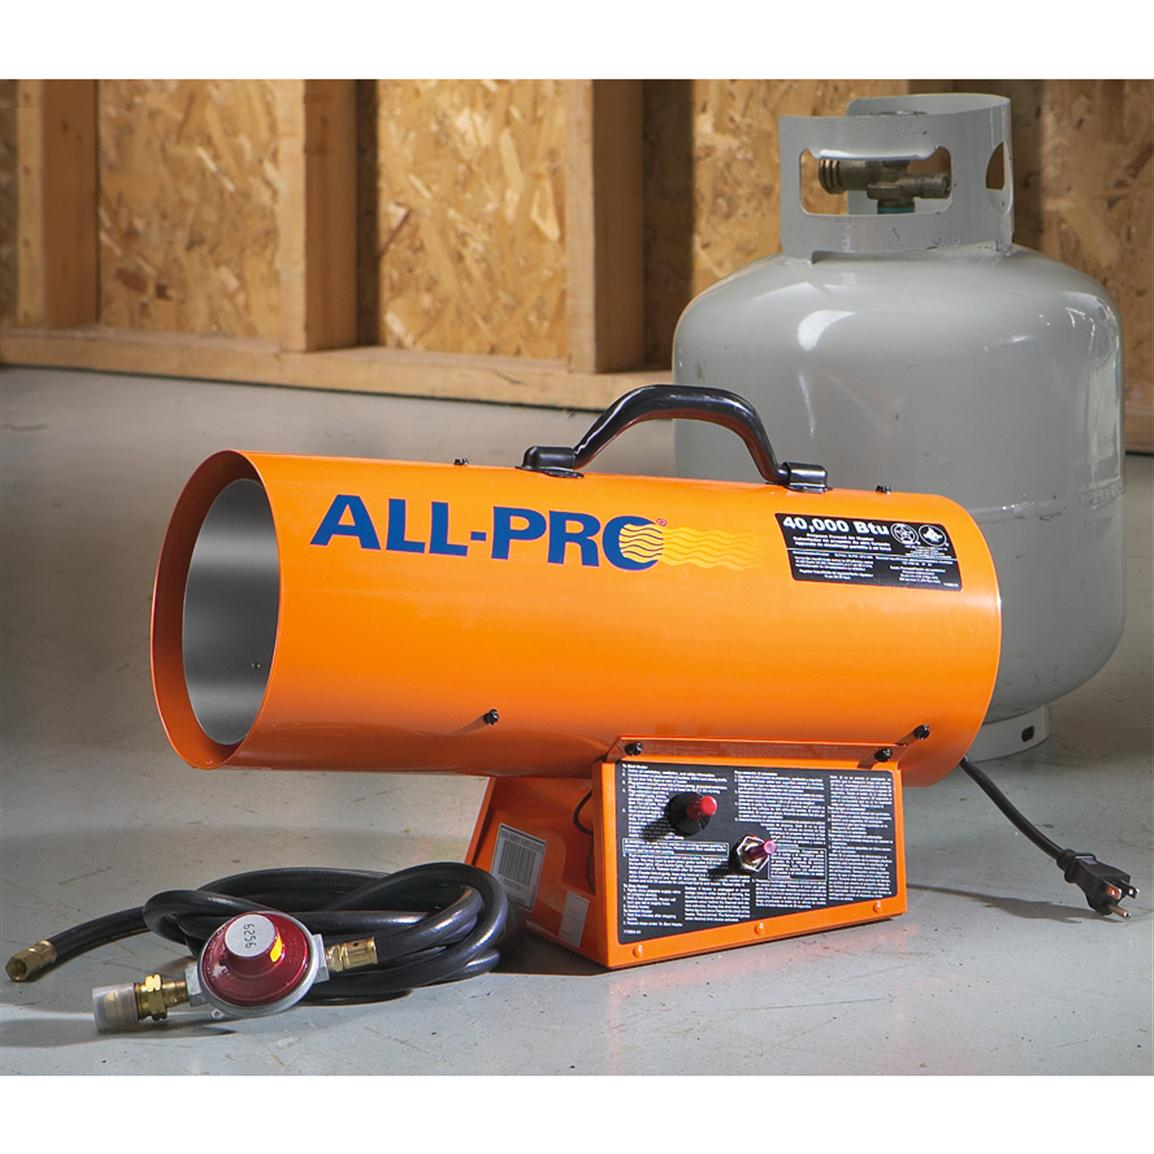 All Pro 40000 Btu Propane Heater 162460 Garage Heaters for proportions 1154 X 1154